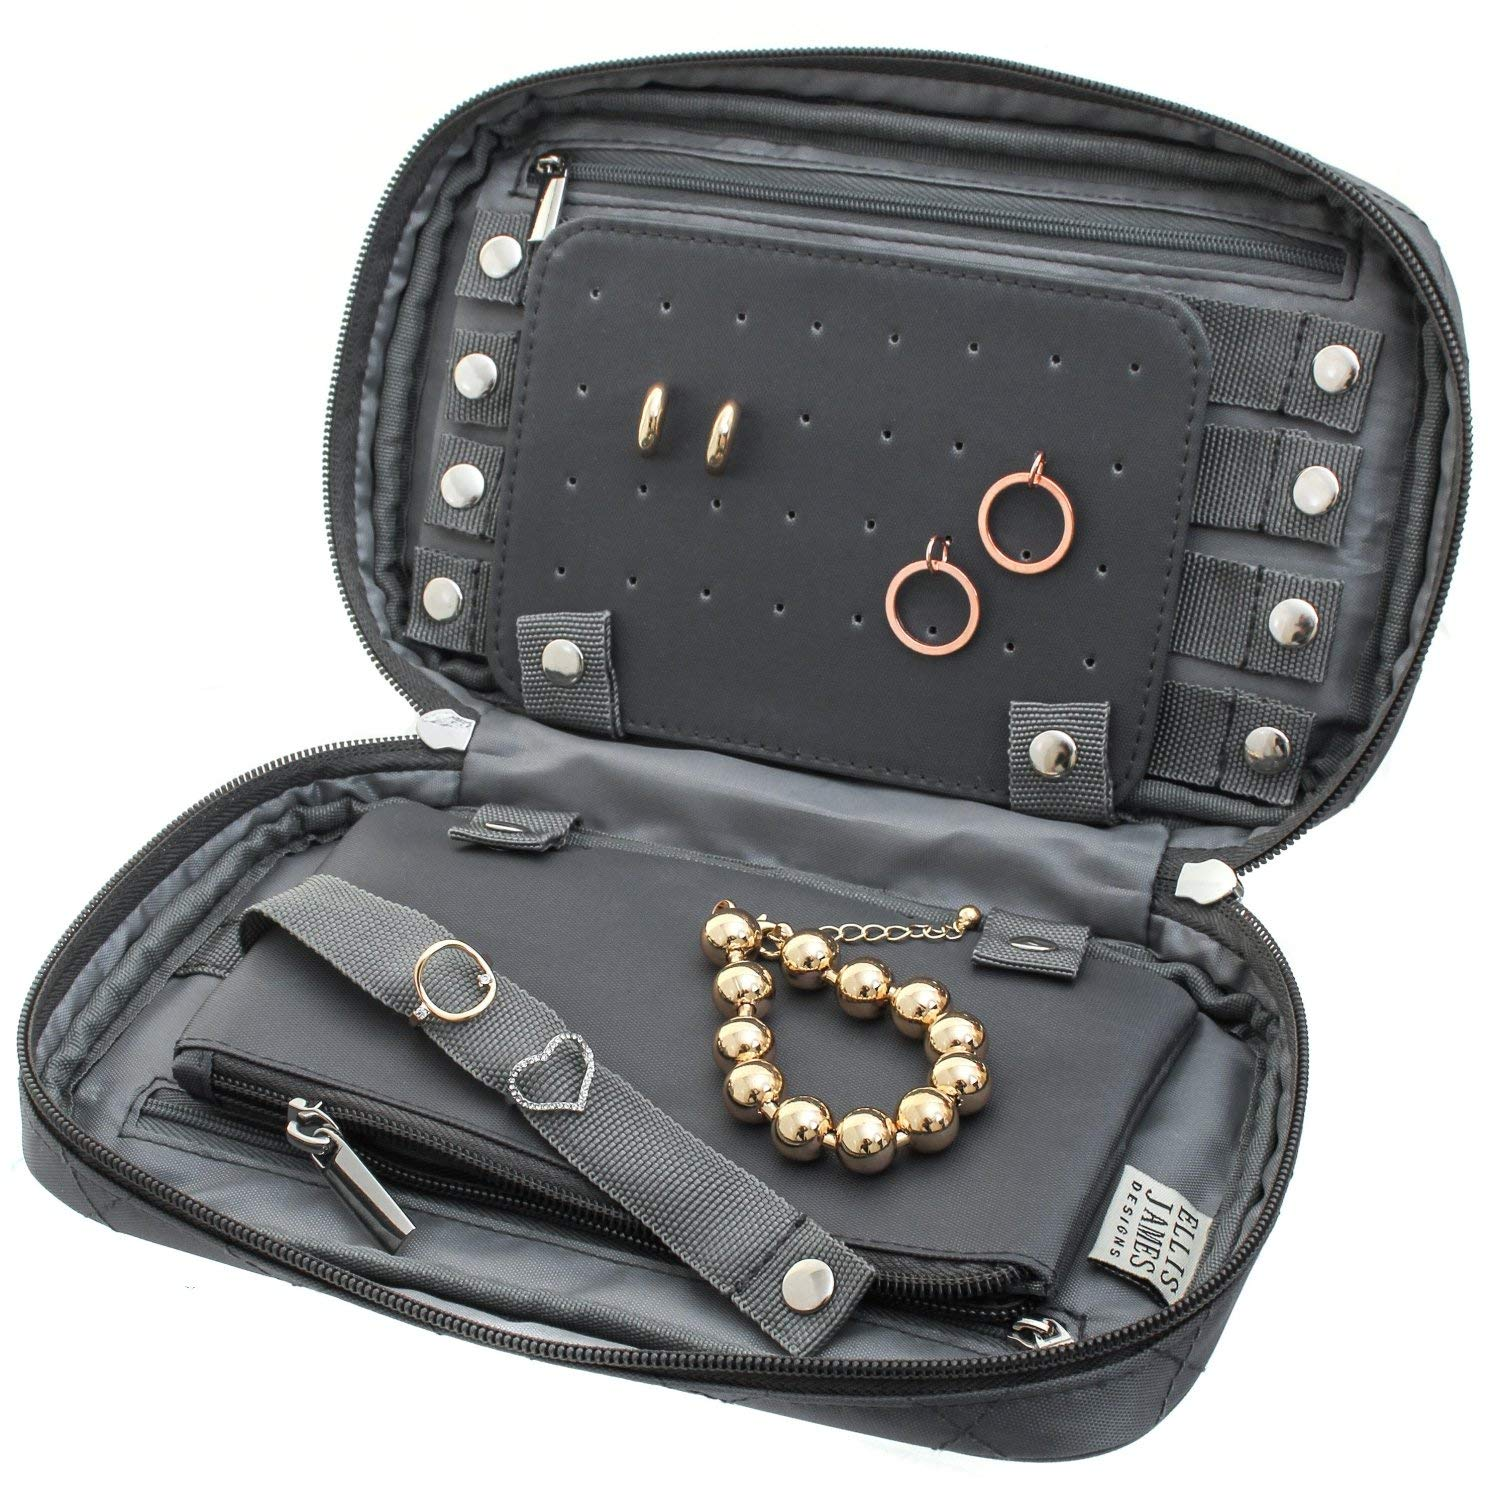 Holiday gift guide for women who love to travel: Portable Jewelry Organizer